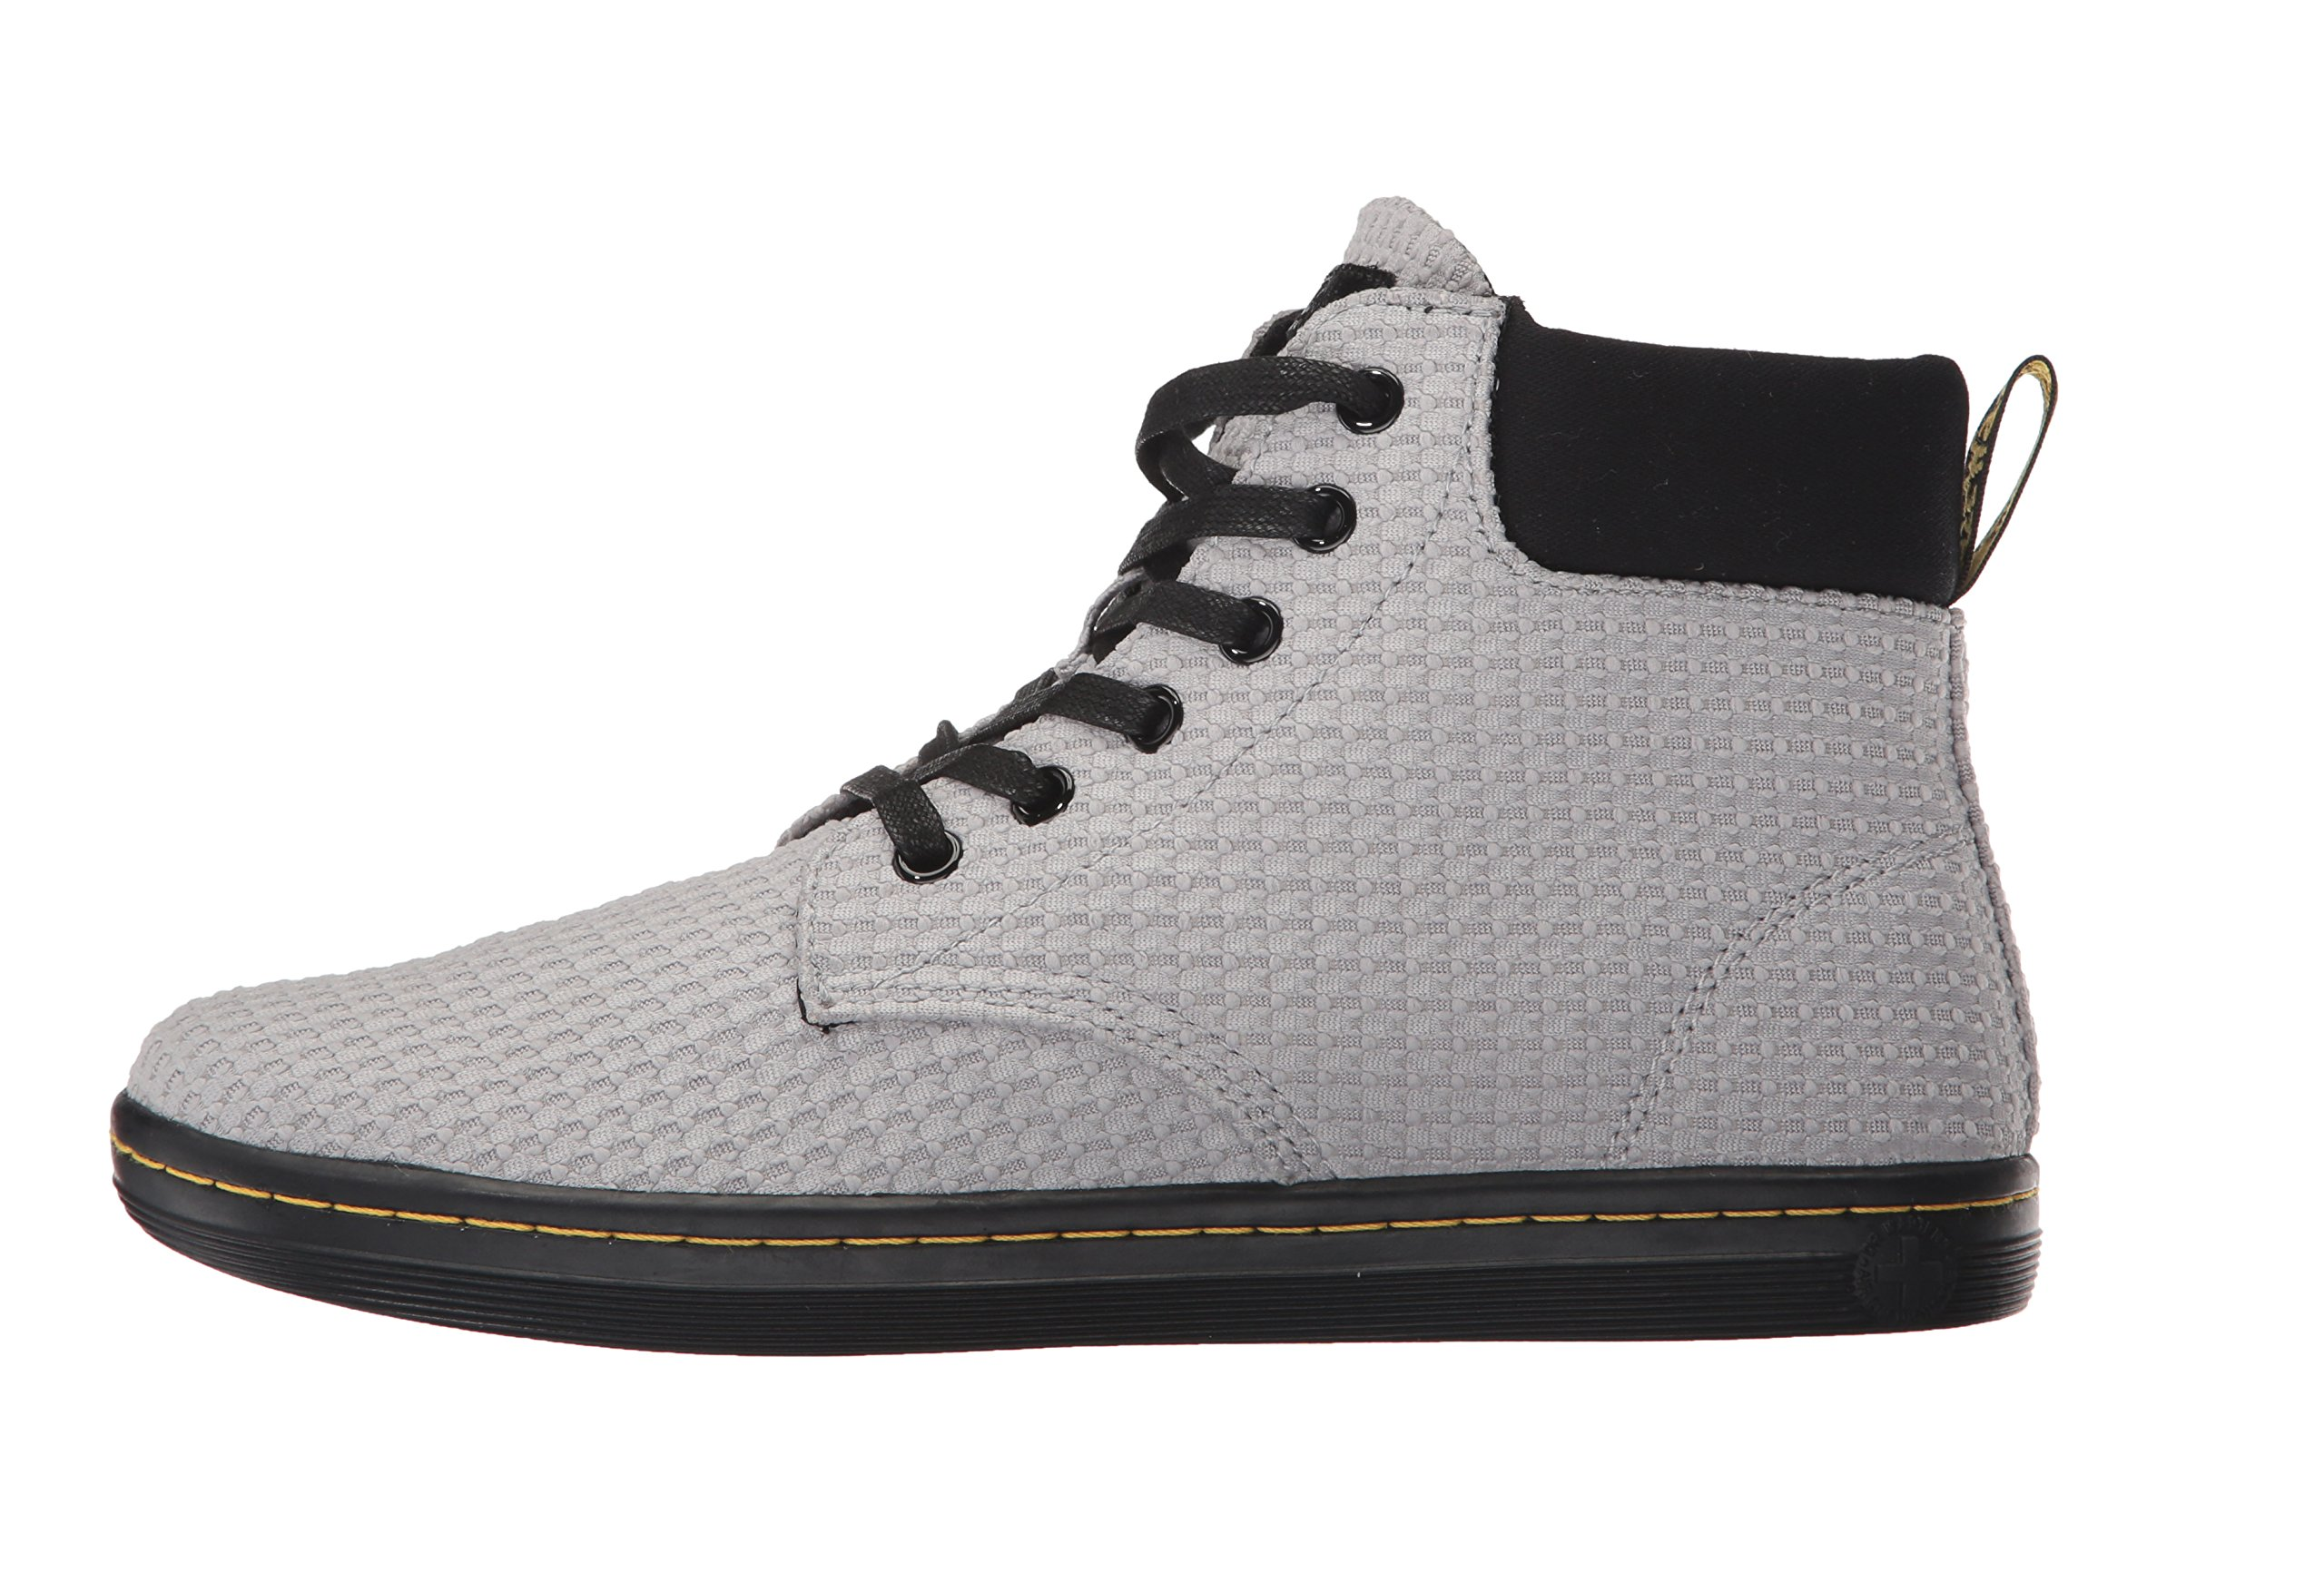 Dr. Martens Women's Maelly WC Fashion Boot, Mid Grey+Black Waffle Cotton+Fine Canvas, 8 Medium UK (10 US) by Dr. Martens (Image #5)